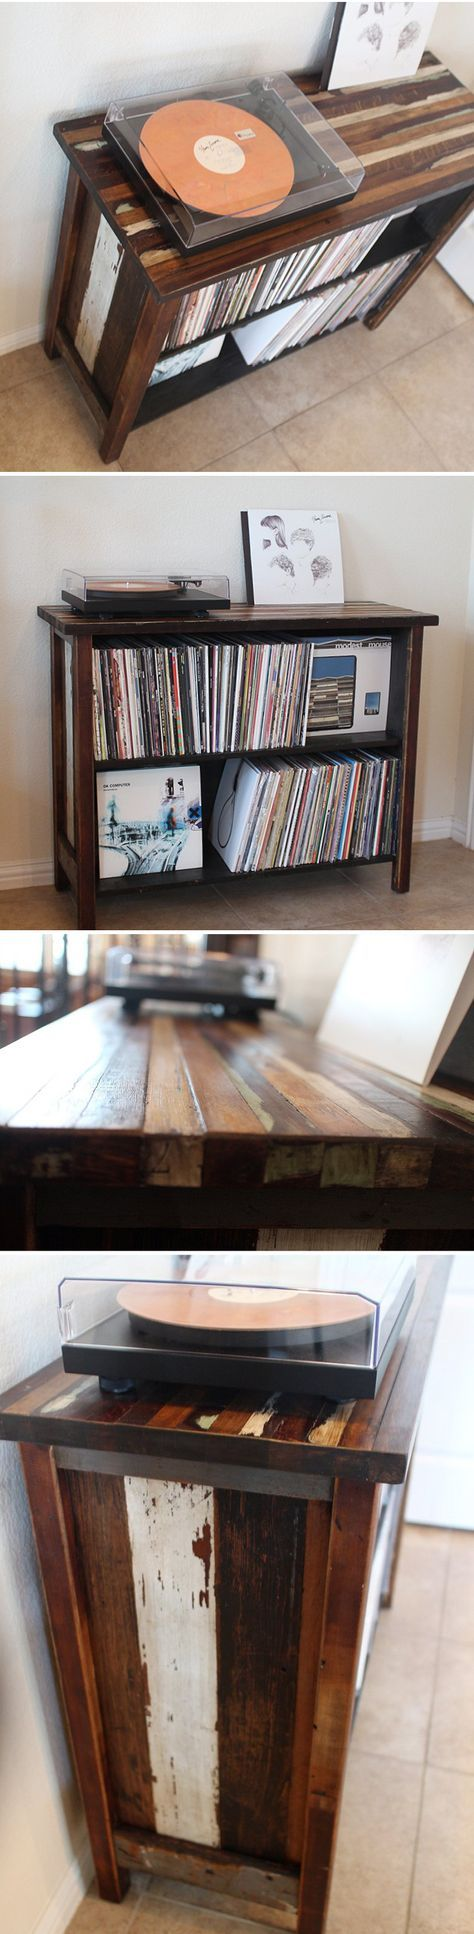 Turntable Stand Made with Reclaimed Piano Wood.  Past meets present with this handmade turntable stand. Made with reclaimed wood from a 1906 Baldwin upright piano, this cabinet is perfect to showcase your vinyl.  Handcrafted in Texas by DenneheyDesign.com